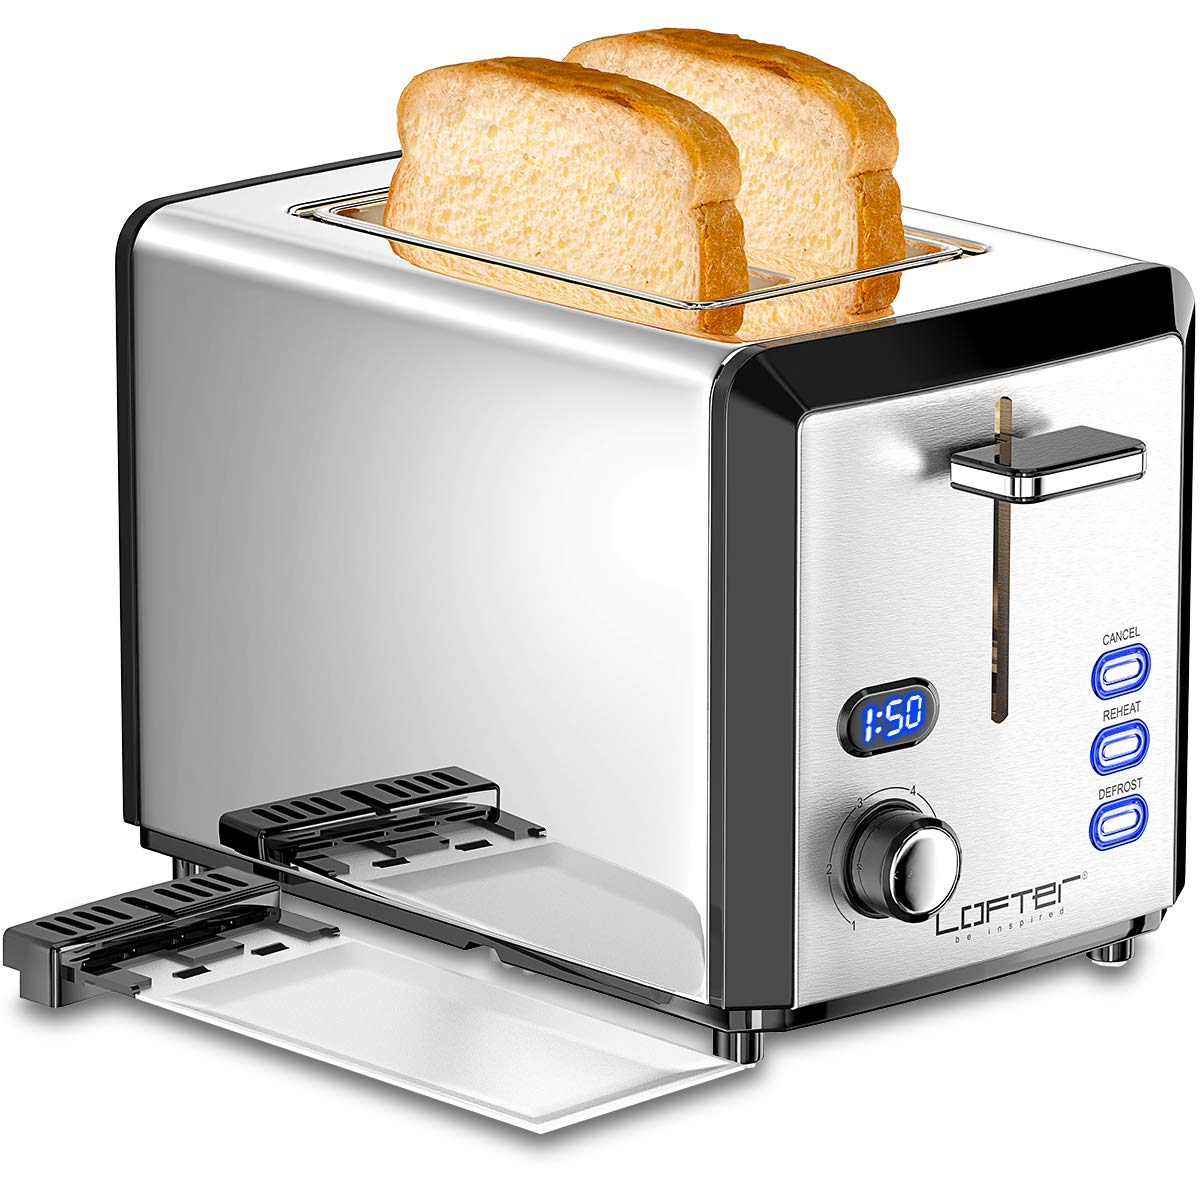 2 Slice Toaster, LOFTER Mirror Stainless Steel Toaster Extra Wide Slots Toasters with 6 Shade Settings, Compact LED Display with Removable Crumb Tray, Defrost Reheat Cancel, High Lift Lever, 800W